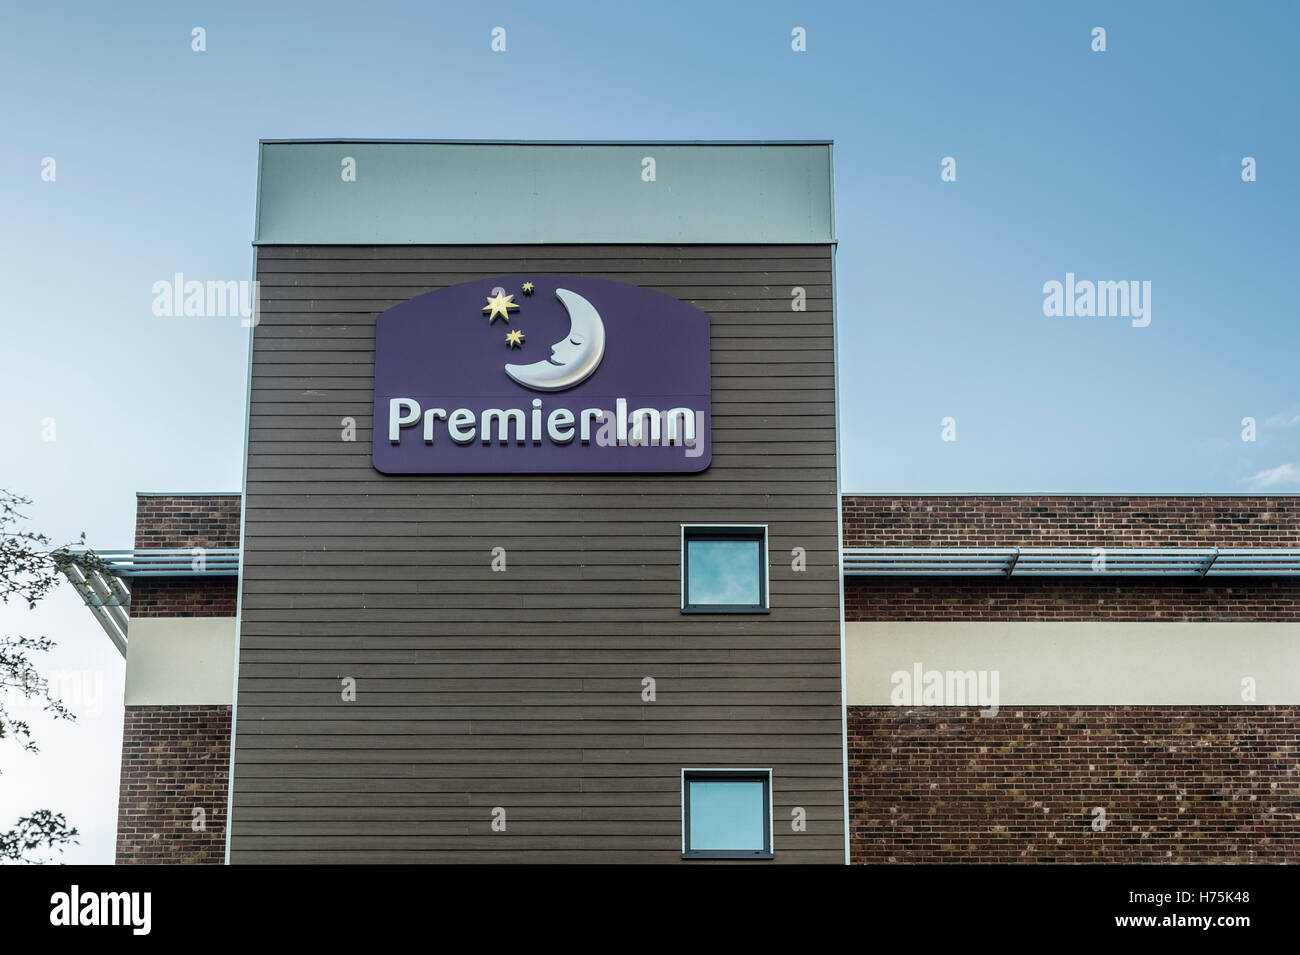 exterior of the Premier Inn Hotel at Hayling Island, Hampshire UK Stock Photo